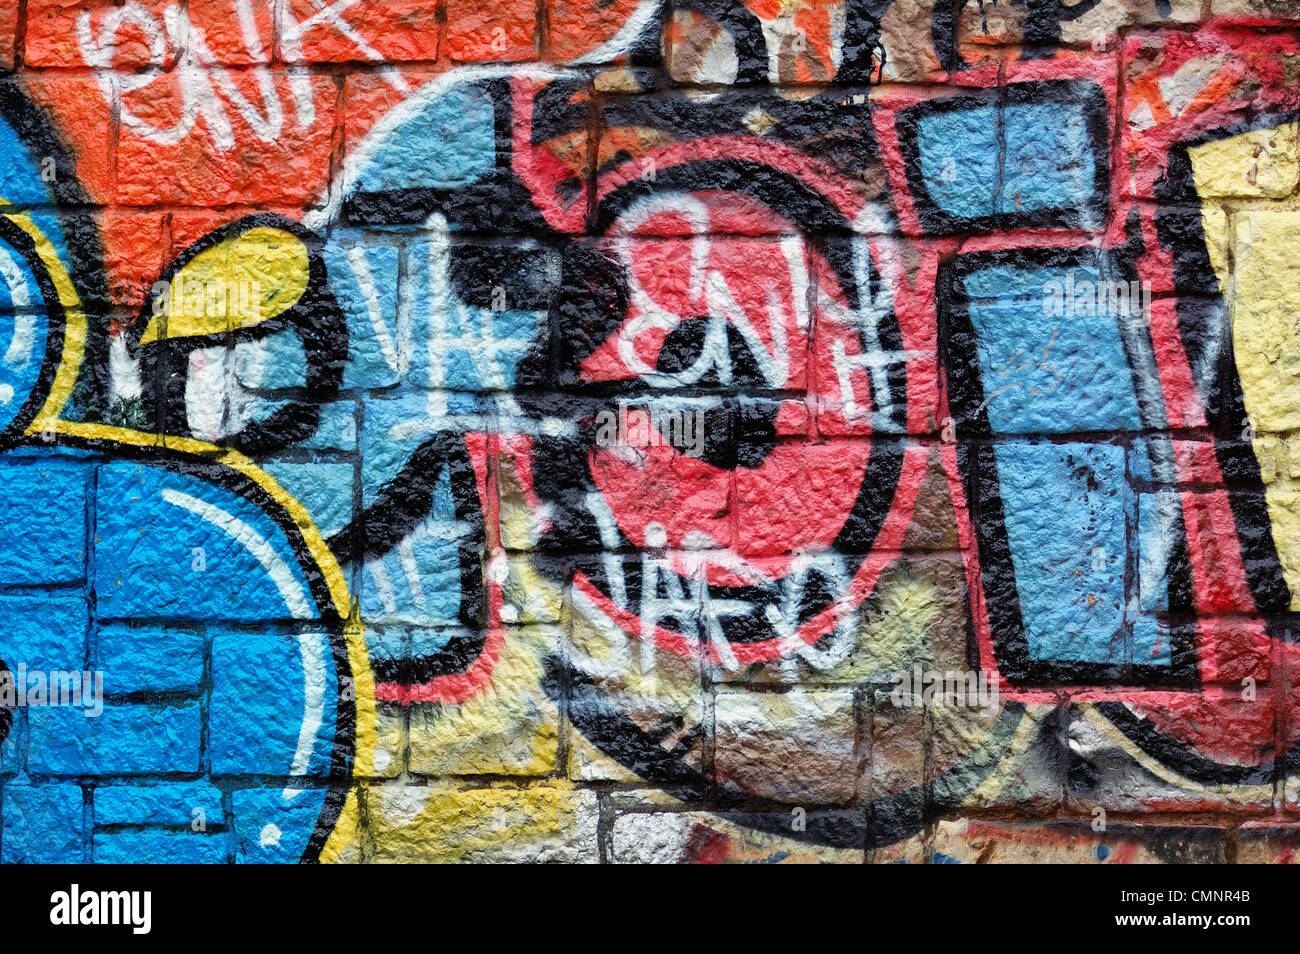 Graffiti art background - Stock Photo Wall With Overlapping Layers Of Messy Graffiti And Tags Urban Street Art Background